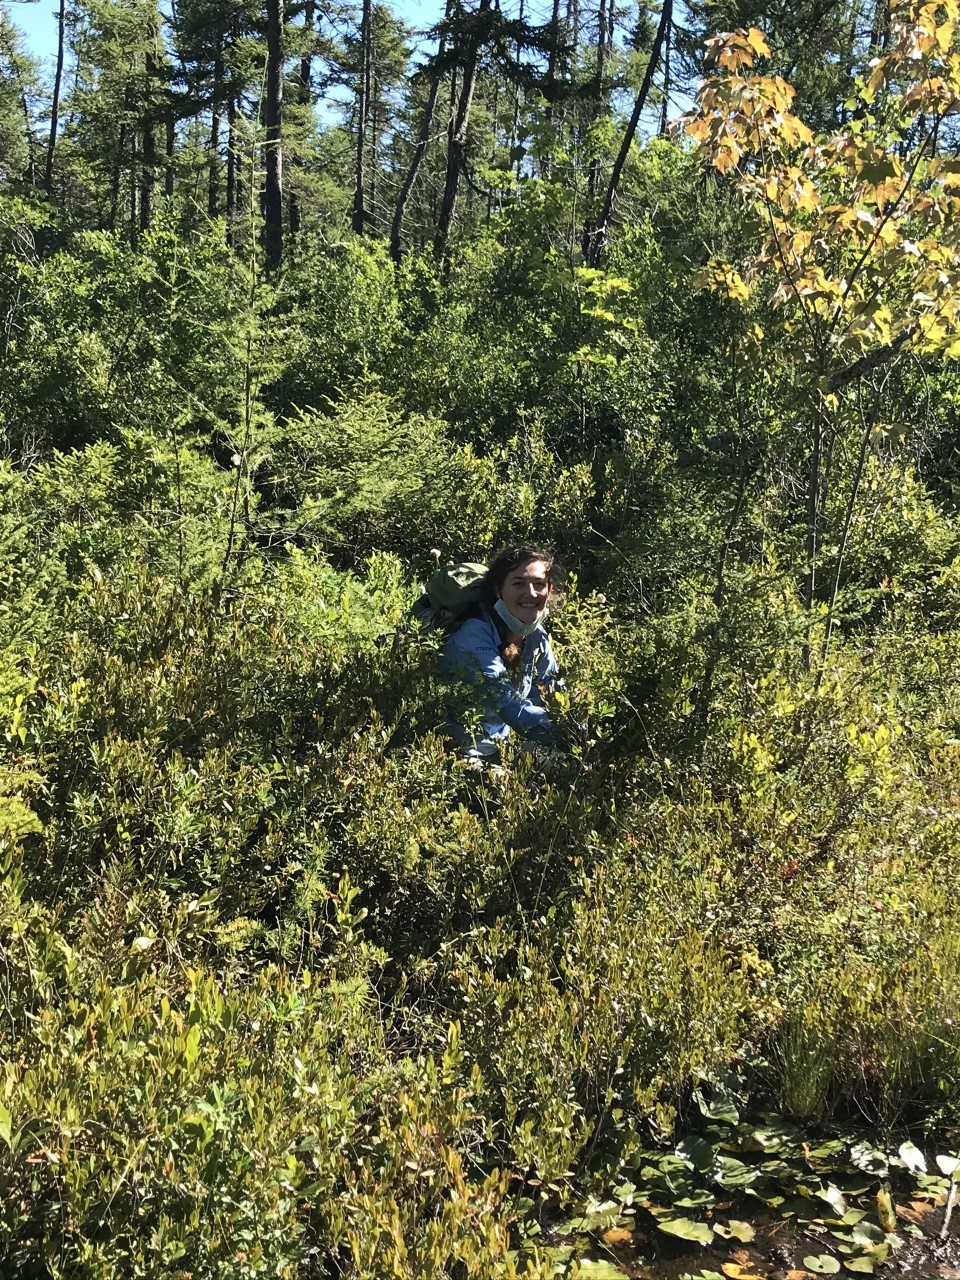 Anna DeGloria, 2020 botanical research intern, out in the field collecting samples.